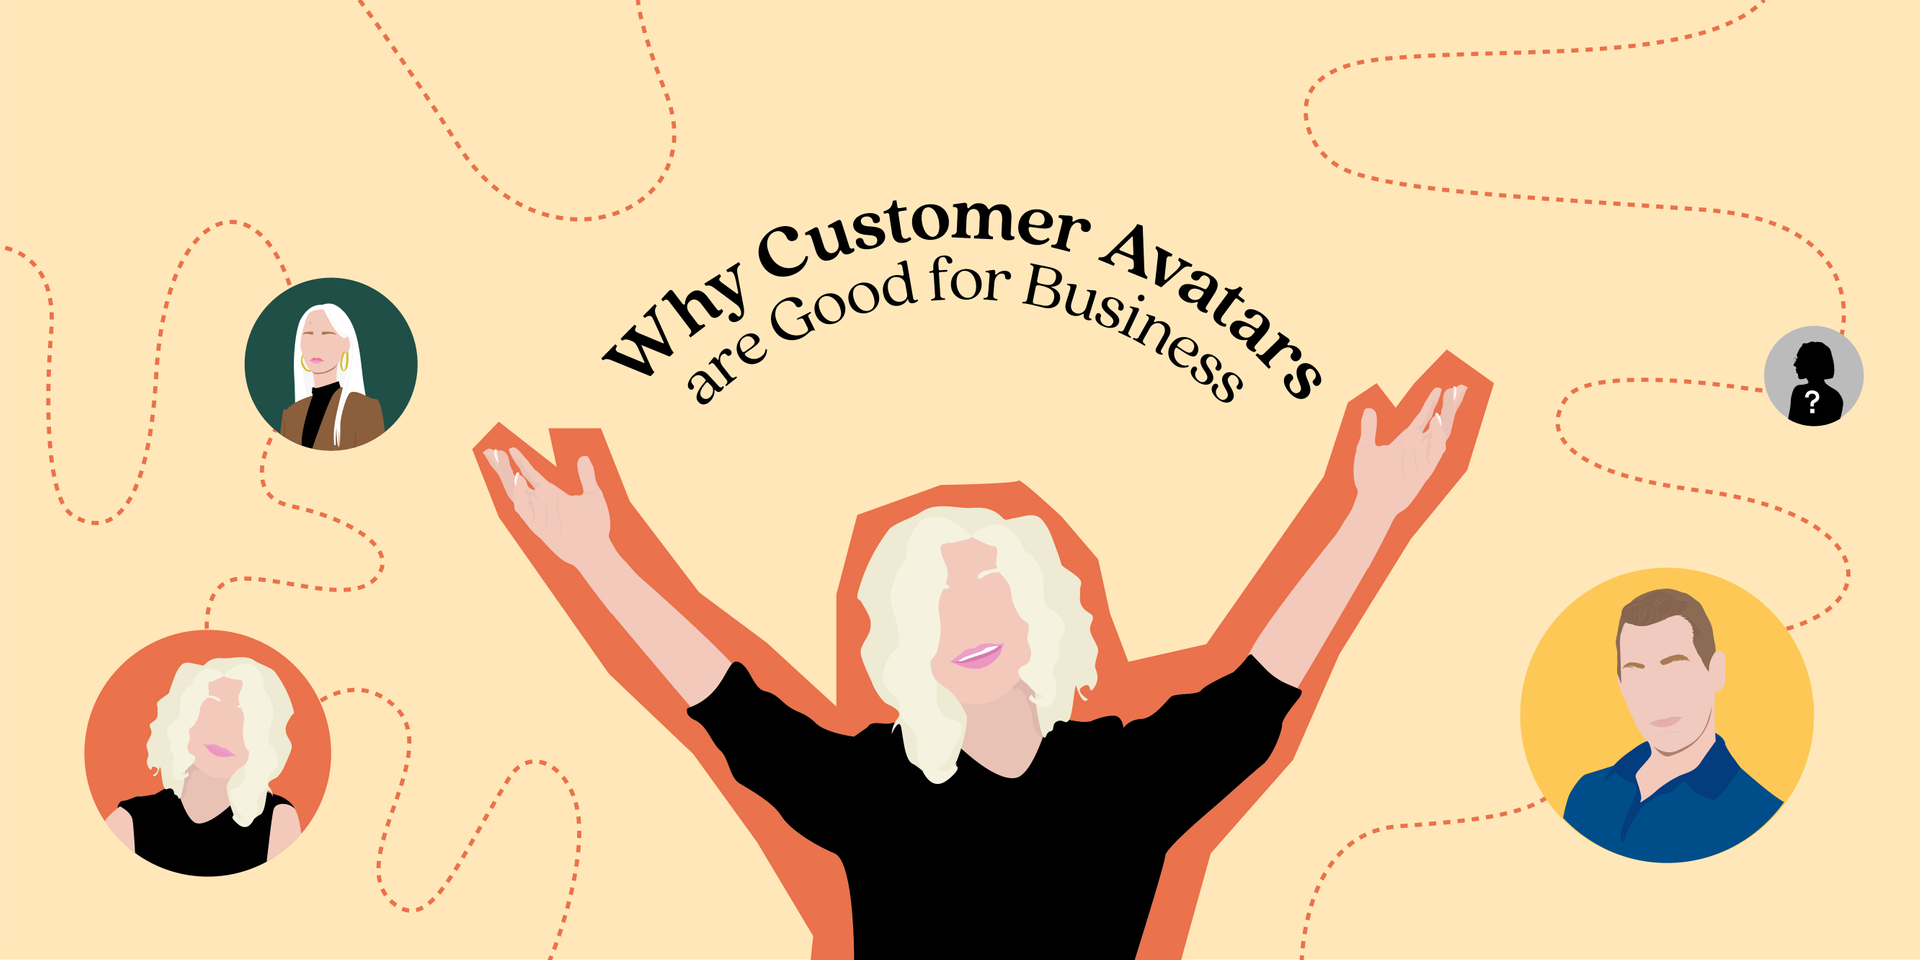 Why Customer Avatars are Good for Business